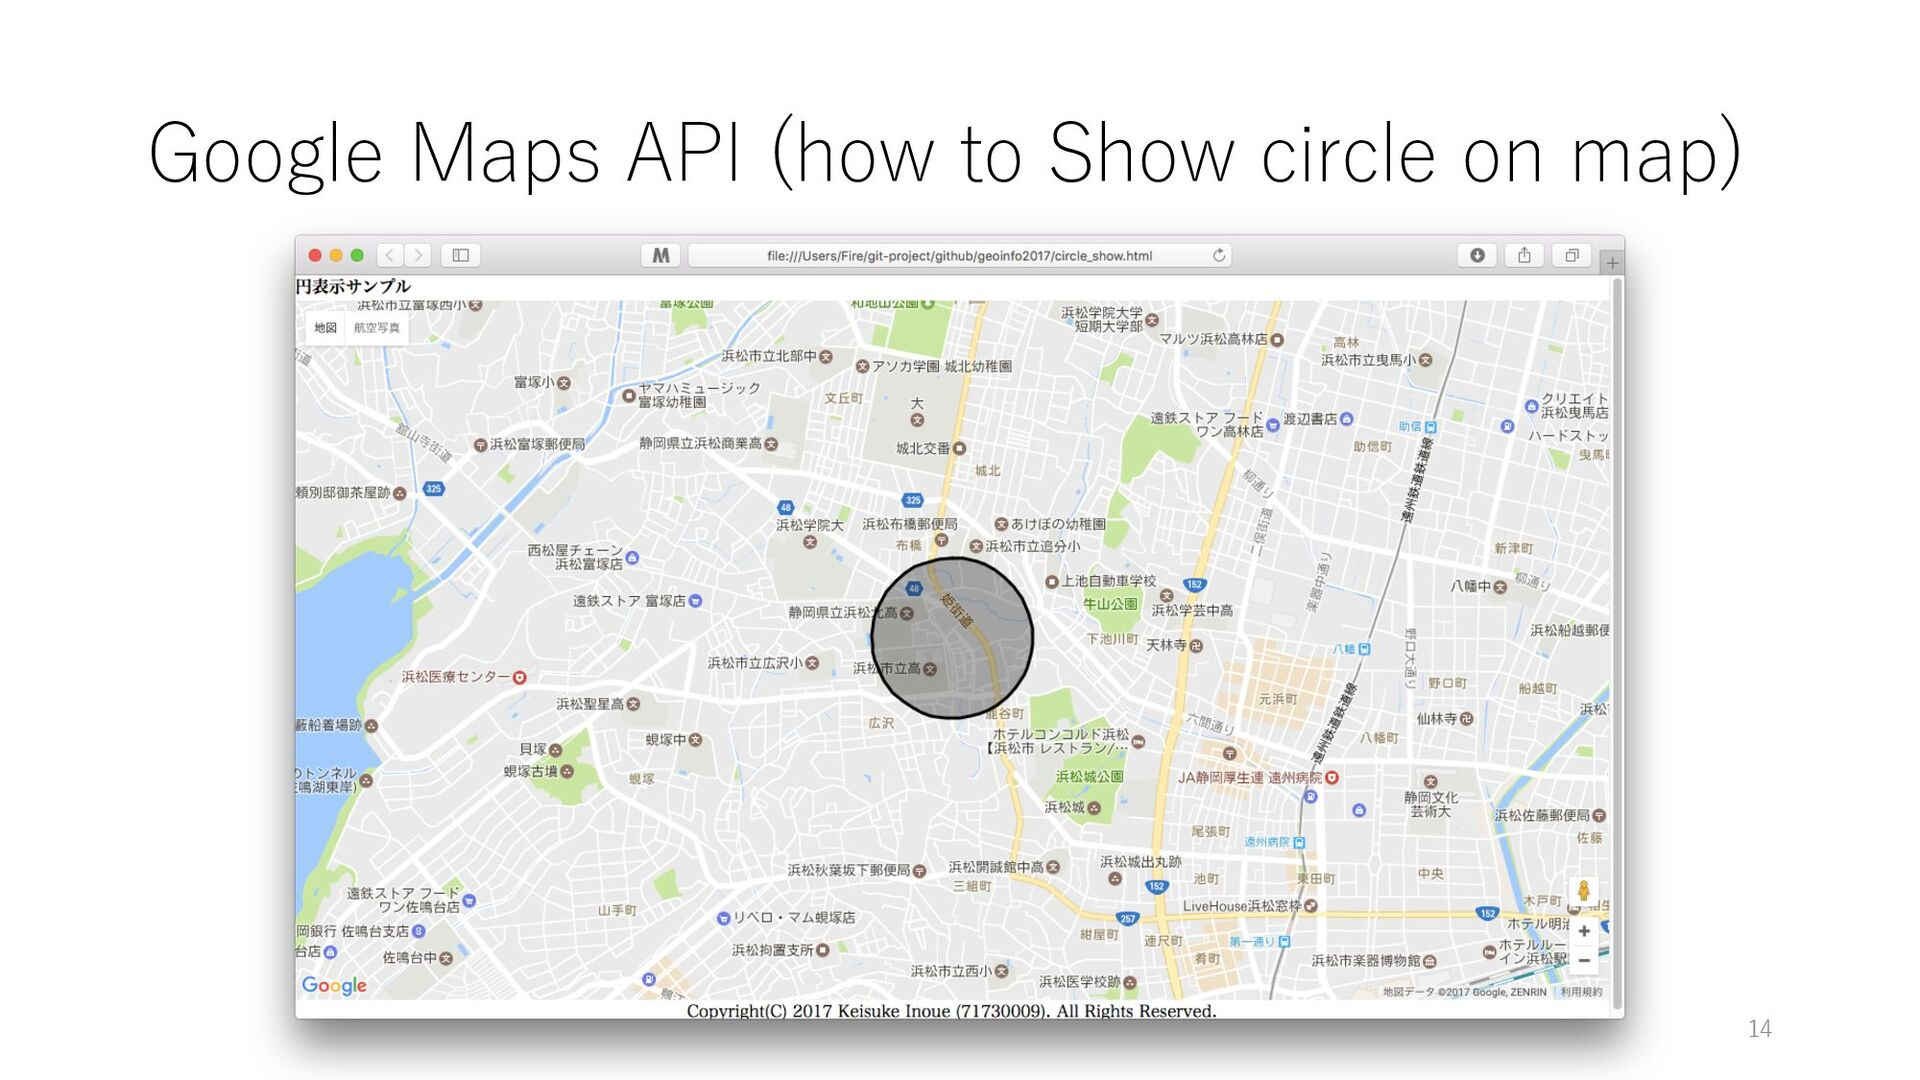 Google Maps API (how to Show circle on map) 14